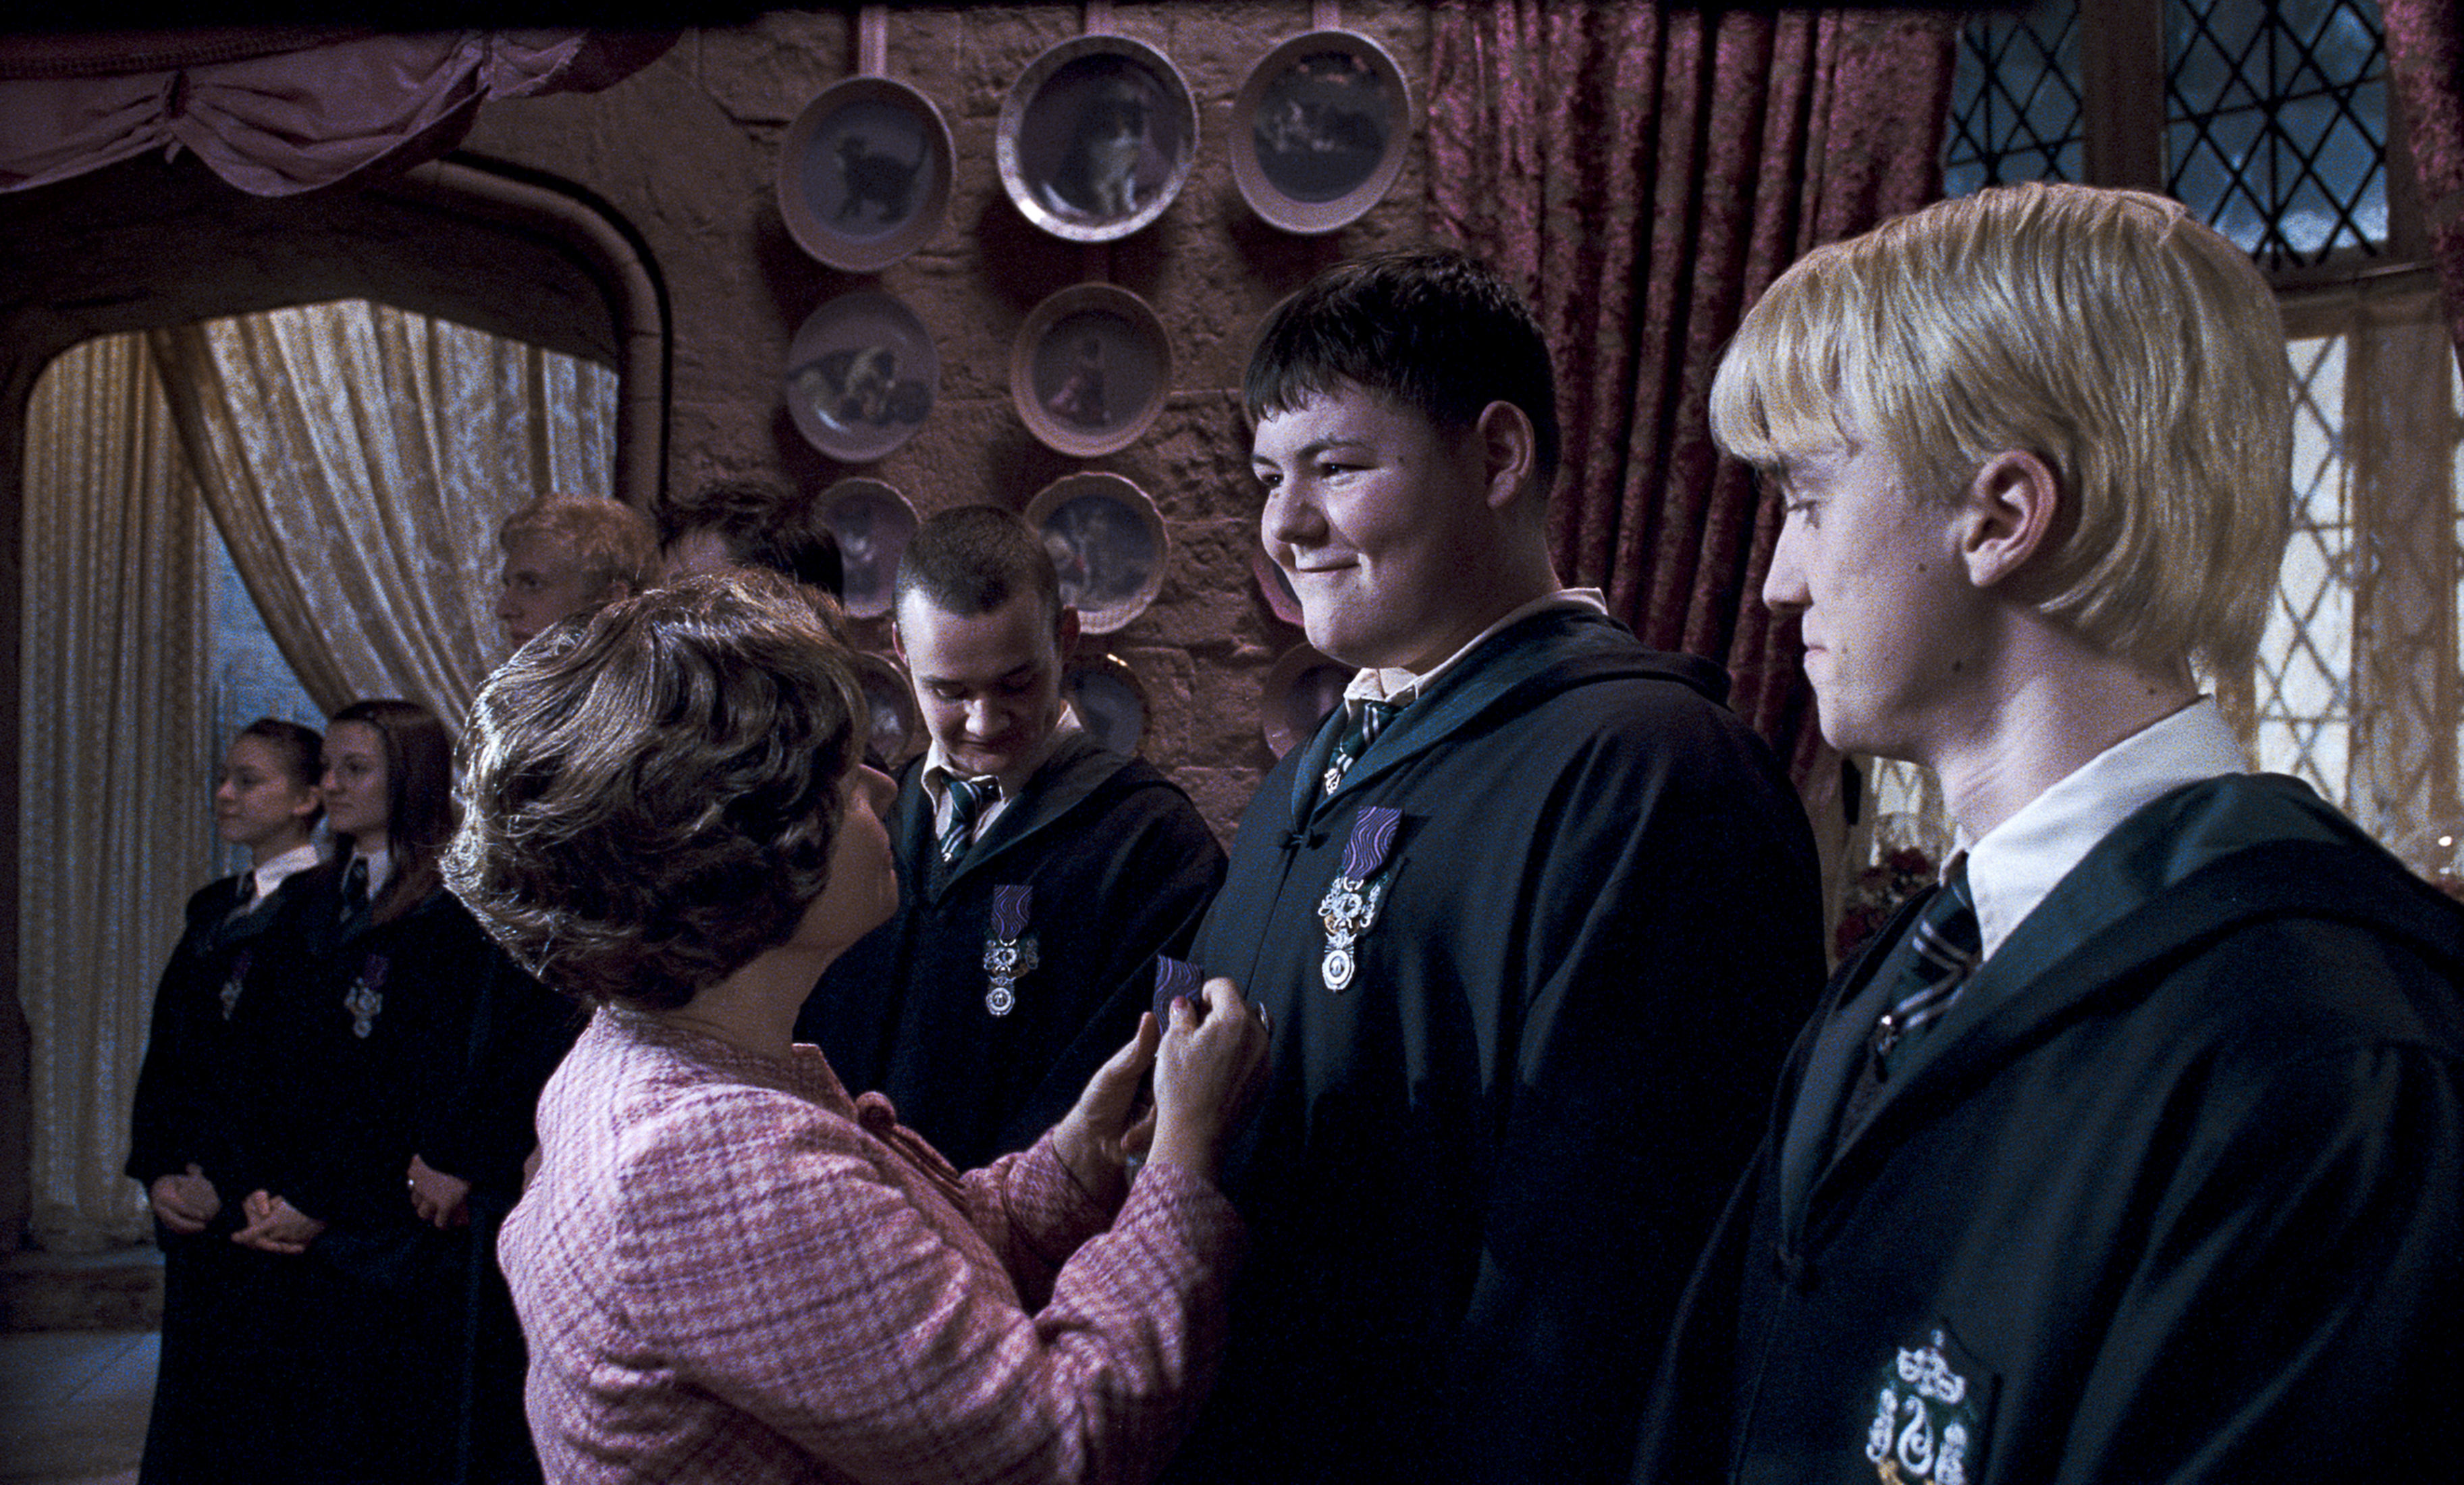 Dolores Umbridge pins a badge to Crabbe's chest as he becomes a member of the Inquisitorial Squad in The Order of the Phoenix